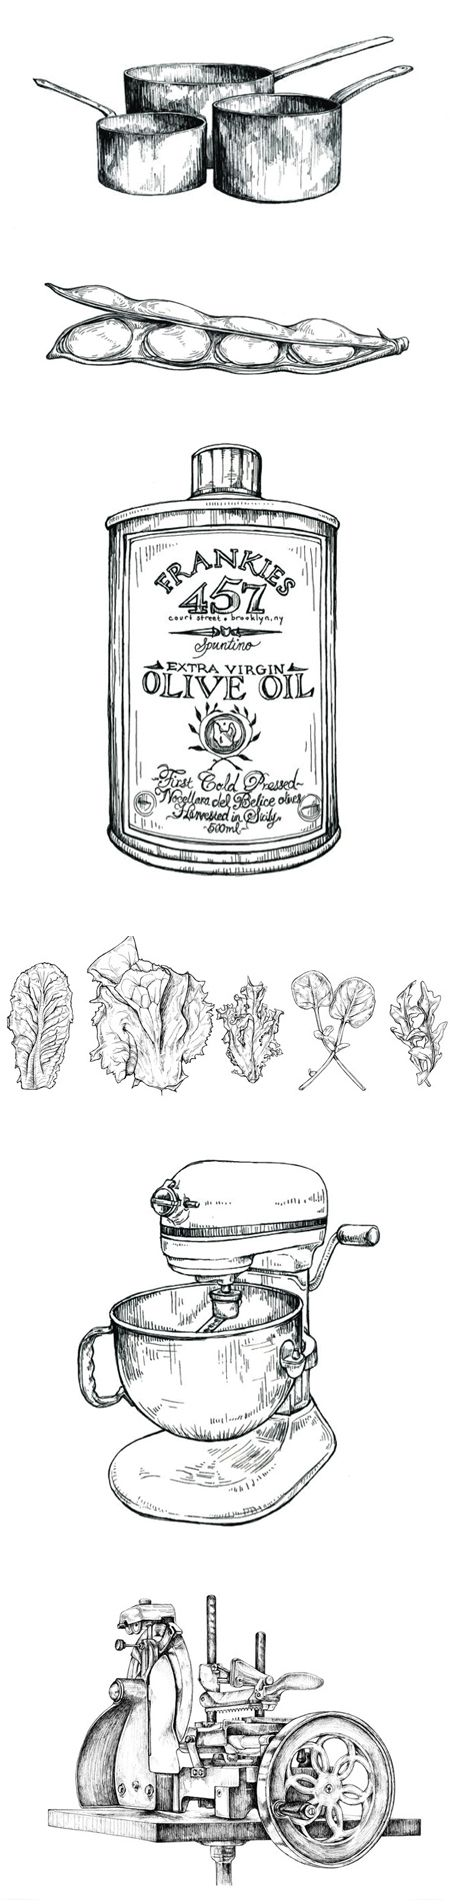 Recently I have become obsessed with food illustrations. I think I shall have to start drawing my own.